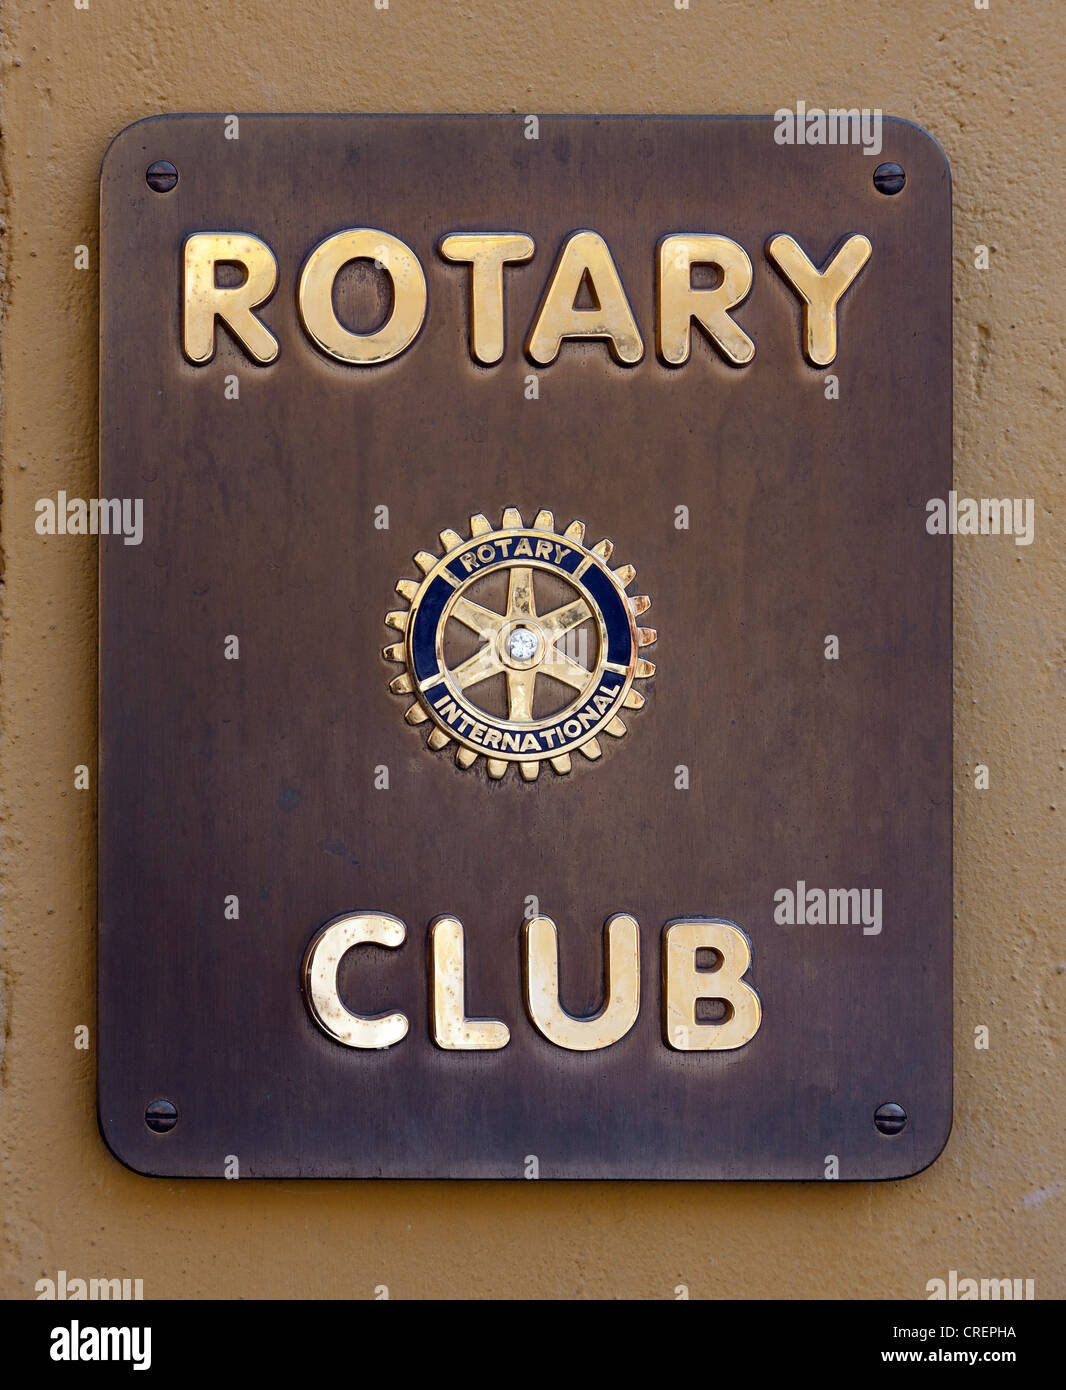 Rotary Club, sign - Stock Image